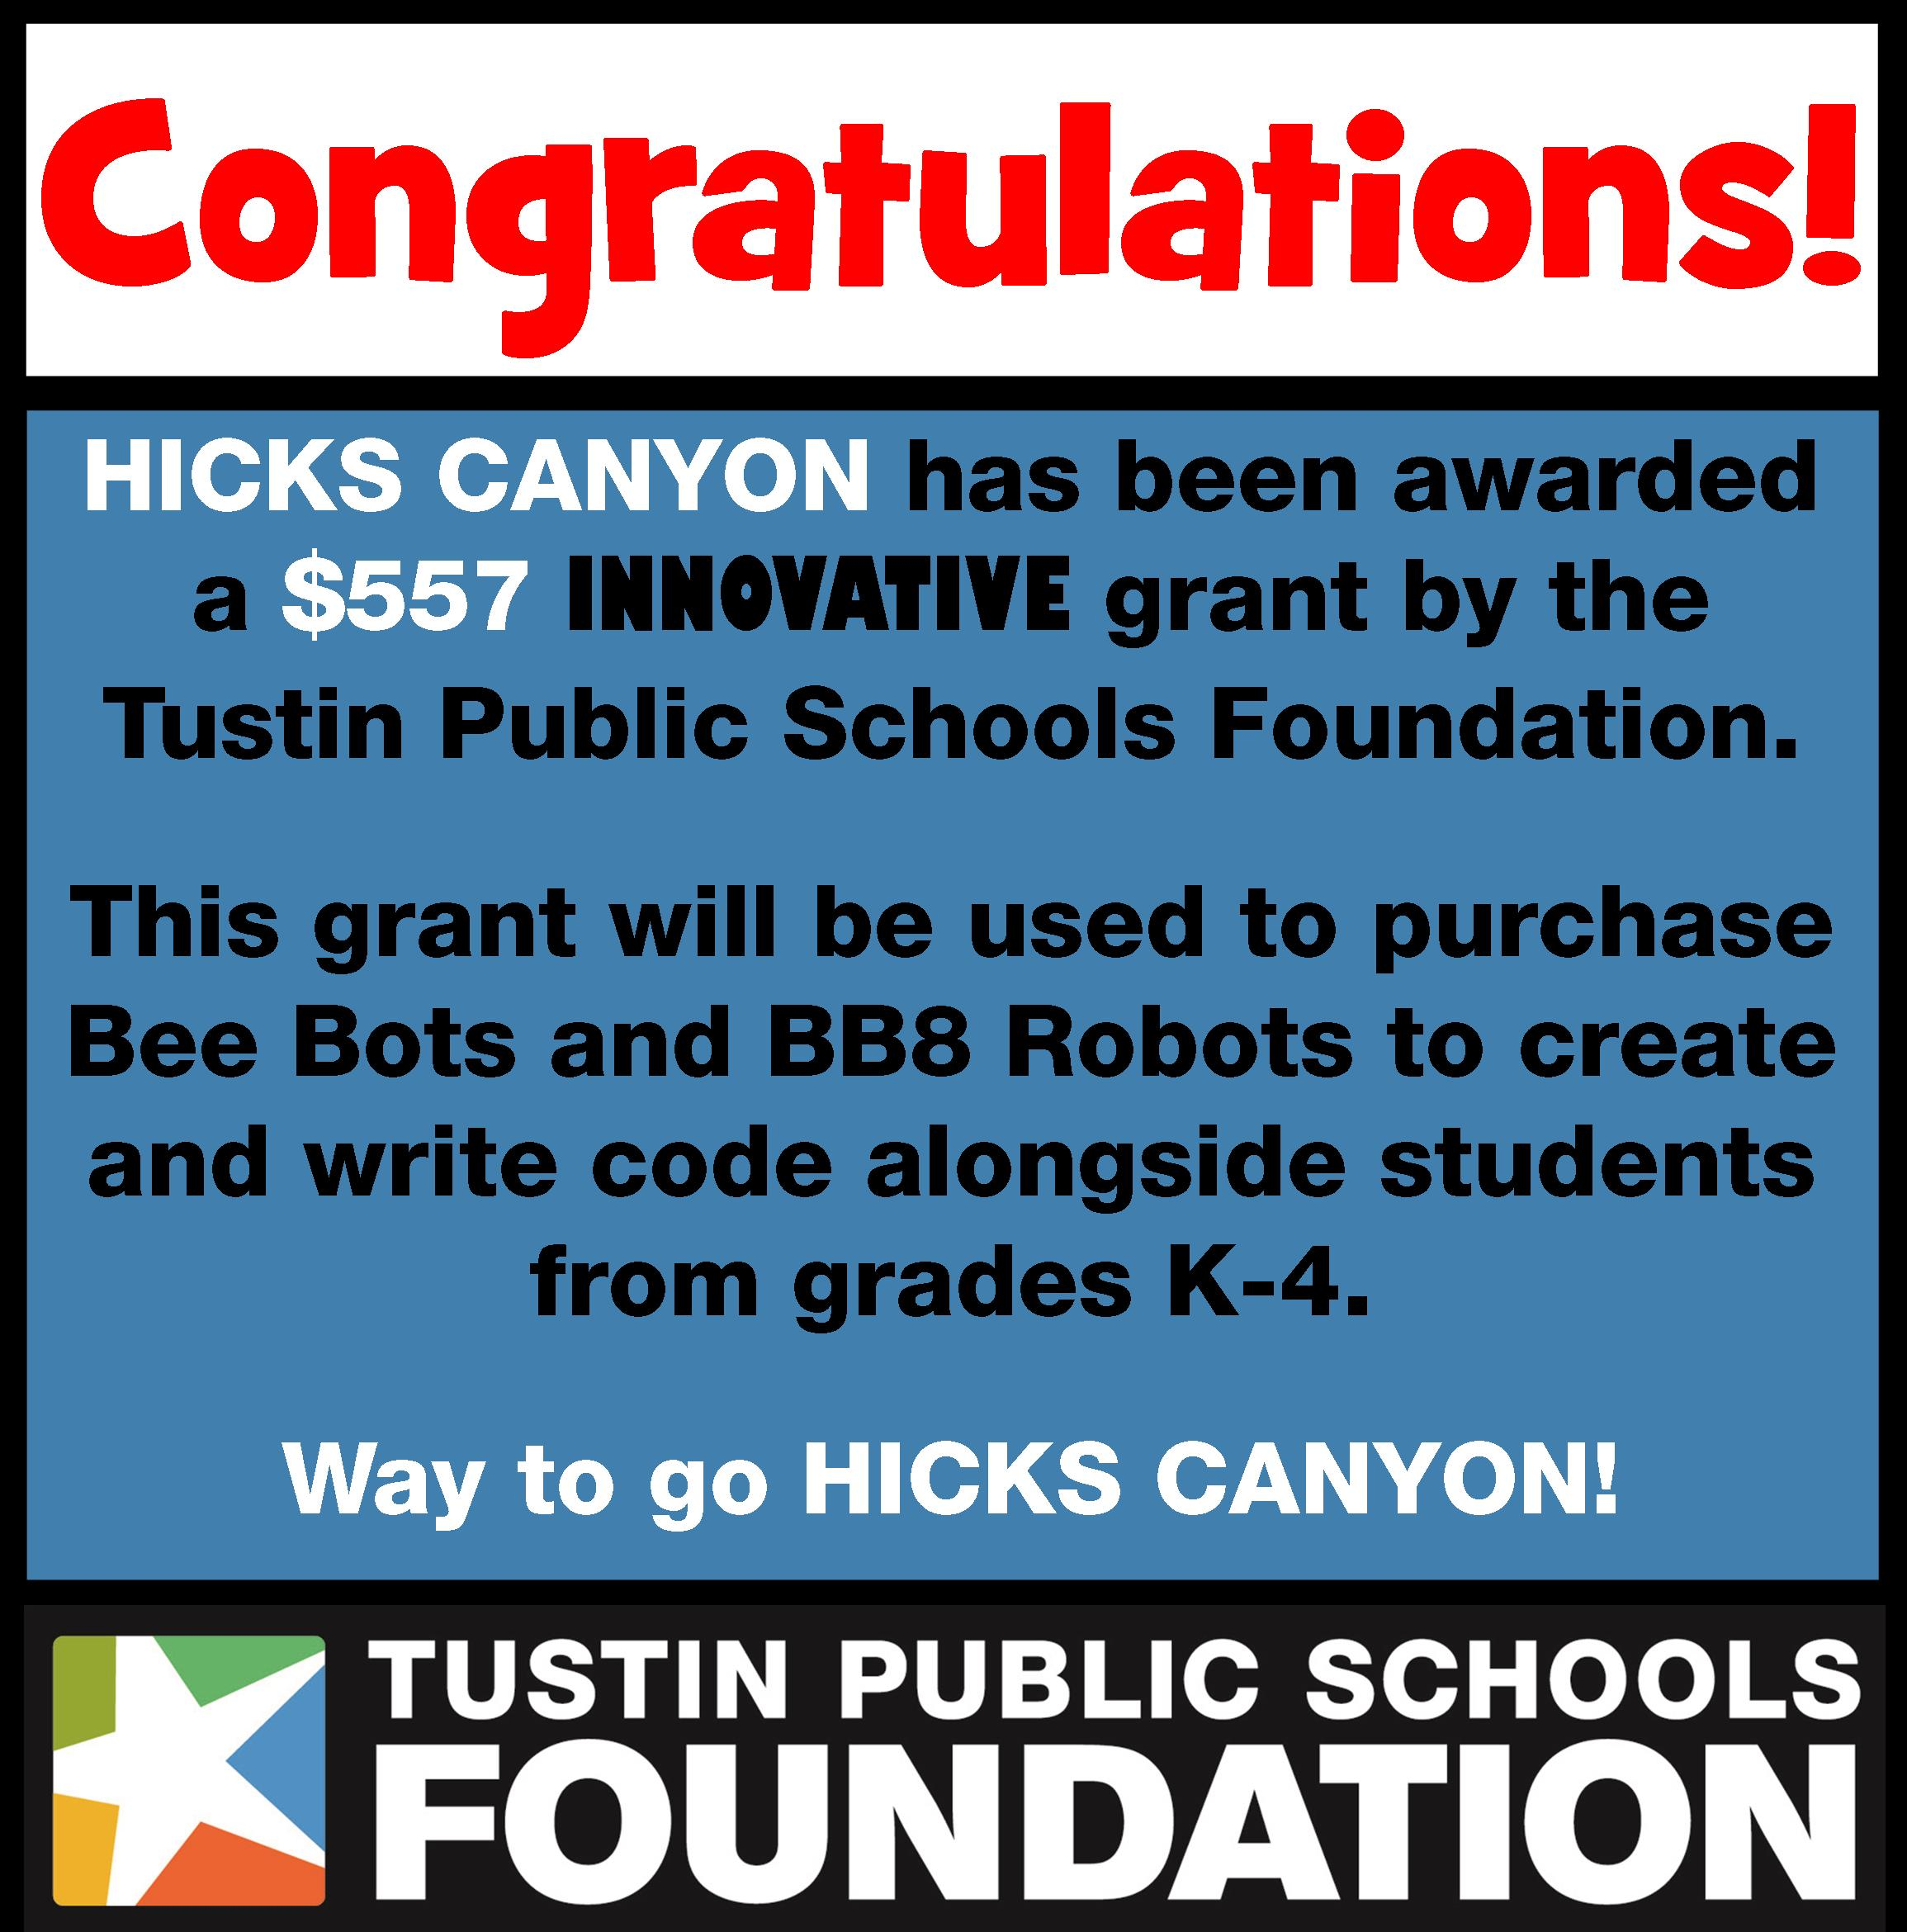 Hicks Canyon Innovative 1 2016.jpg